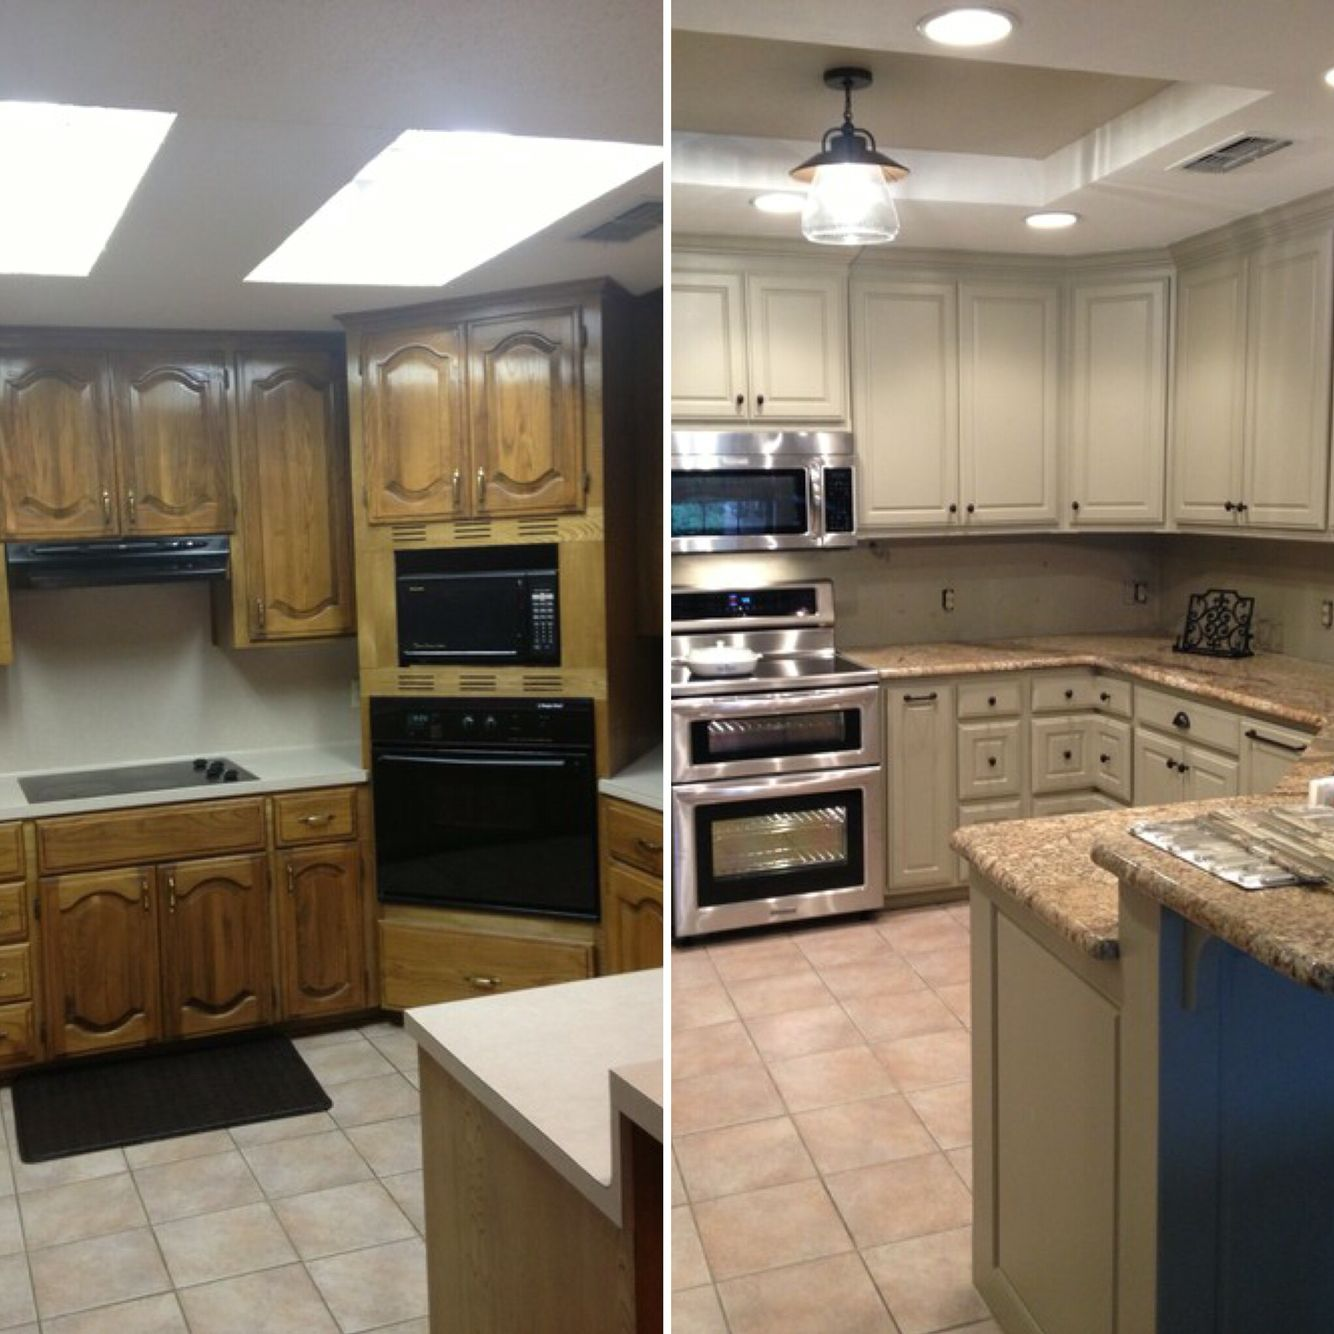 Before And After For Updating Drop Ceiling Kitchen Fluorescent Lighting